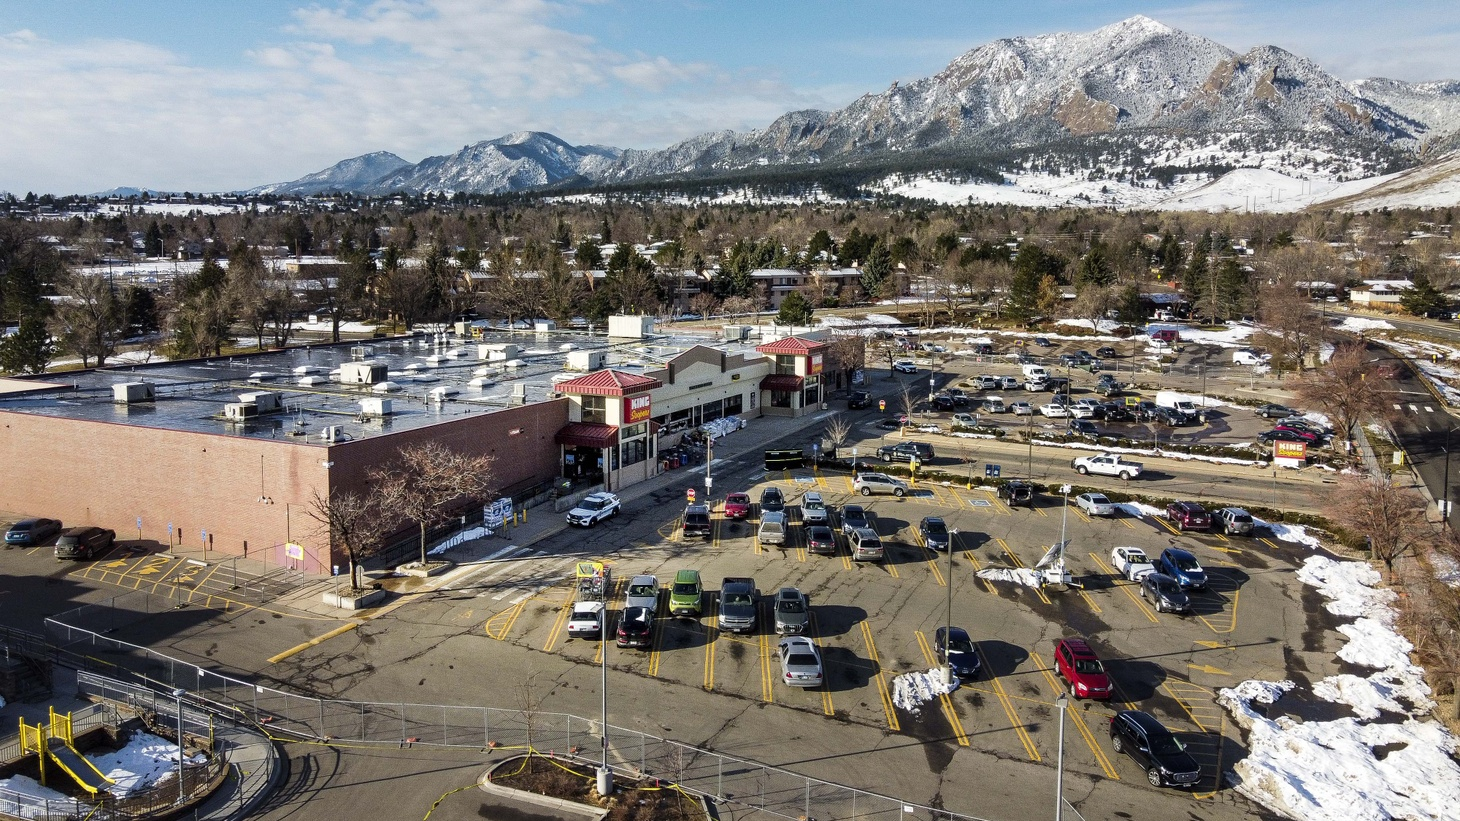 In this aerial photograph from a drone, police officers continue their investigation of a shooting at a King Soopers grocery store where multiple people were killed, including a police officer on March 23, 2021, Boulder, Colorado, USA.